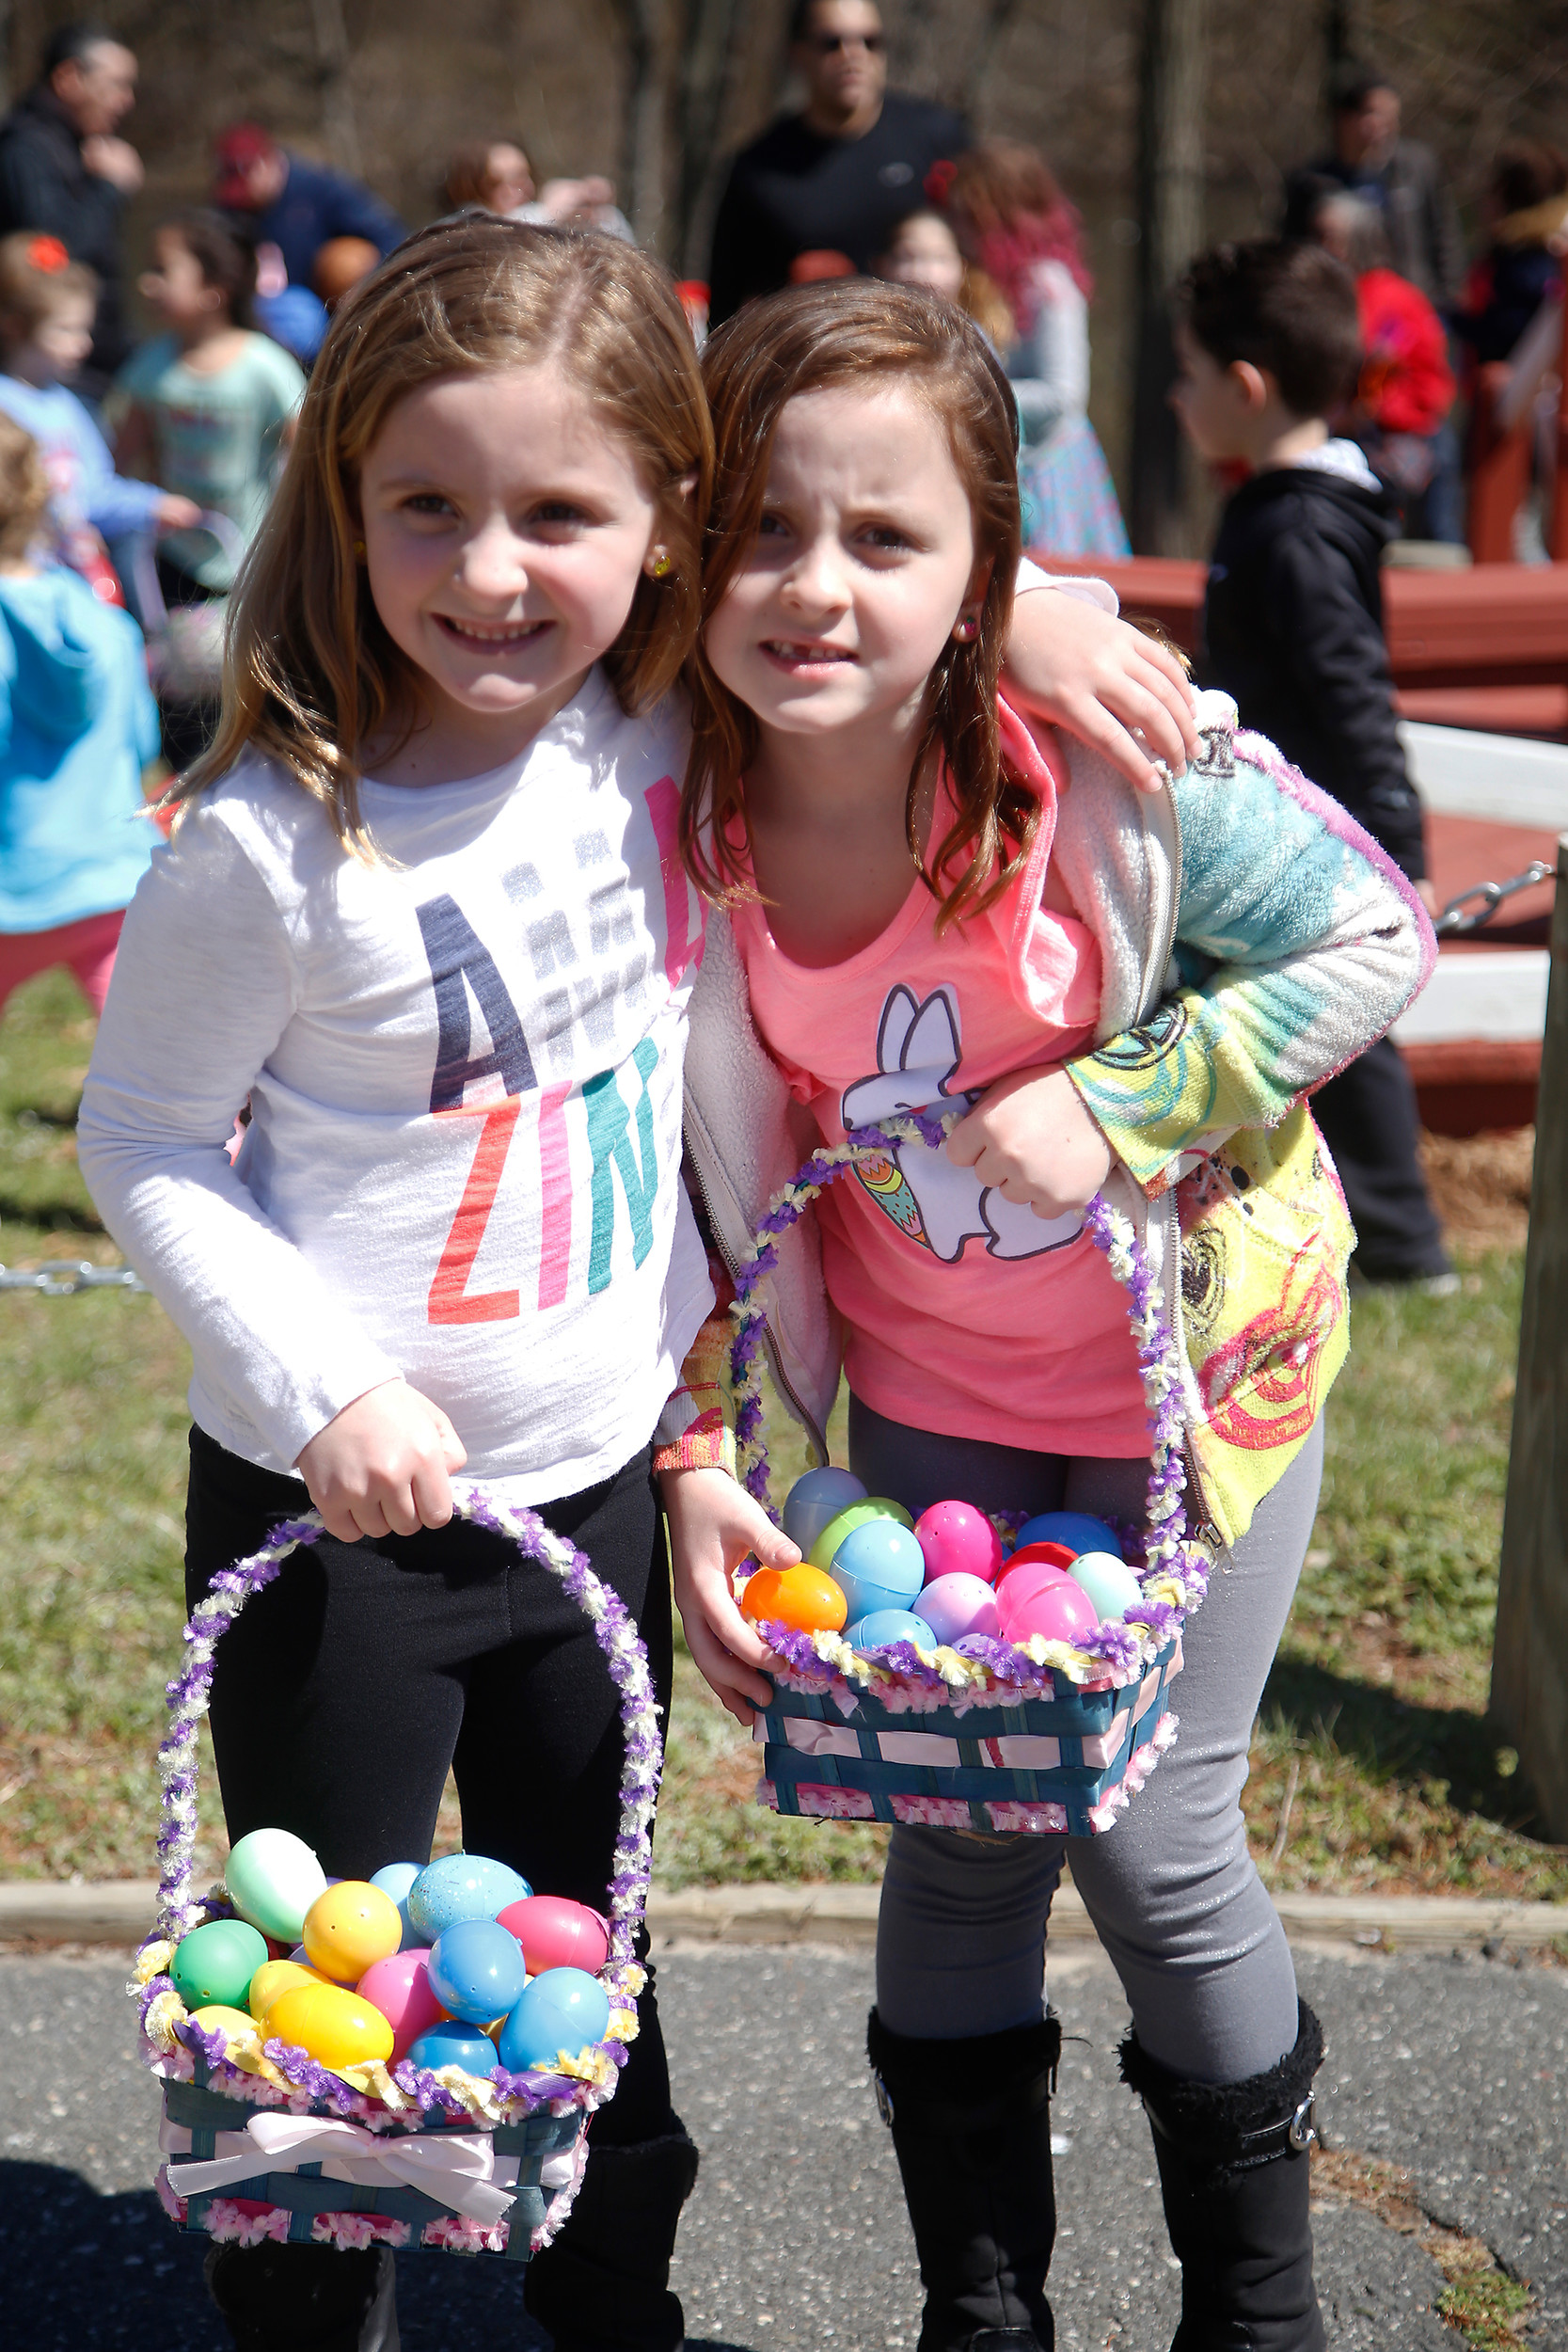 Sisters Maya Krudler, 6, left, and Gianna Krudler, 7, had fun teaming up at the egg hunt.